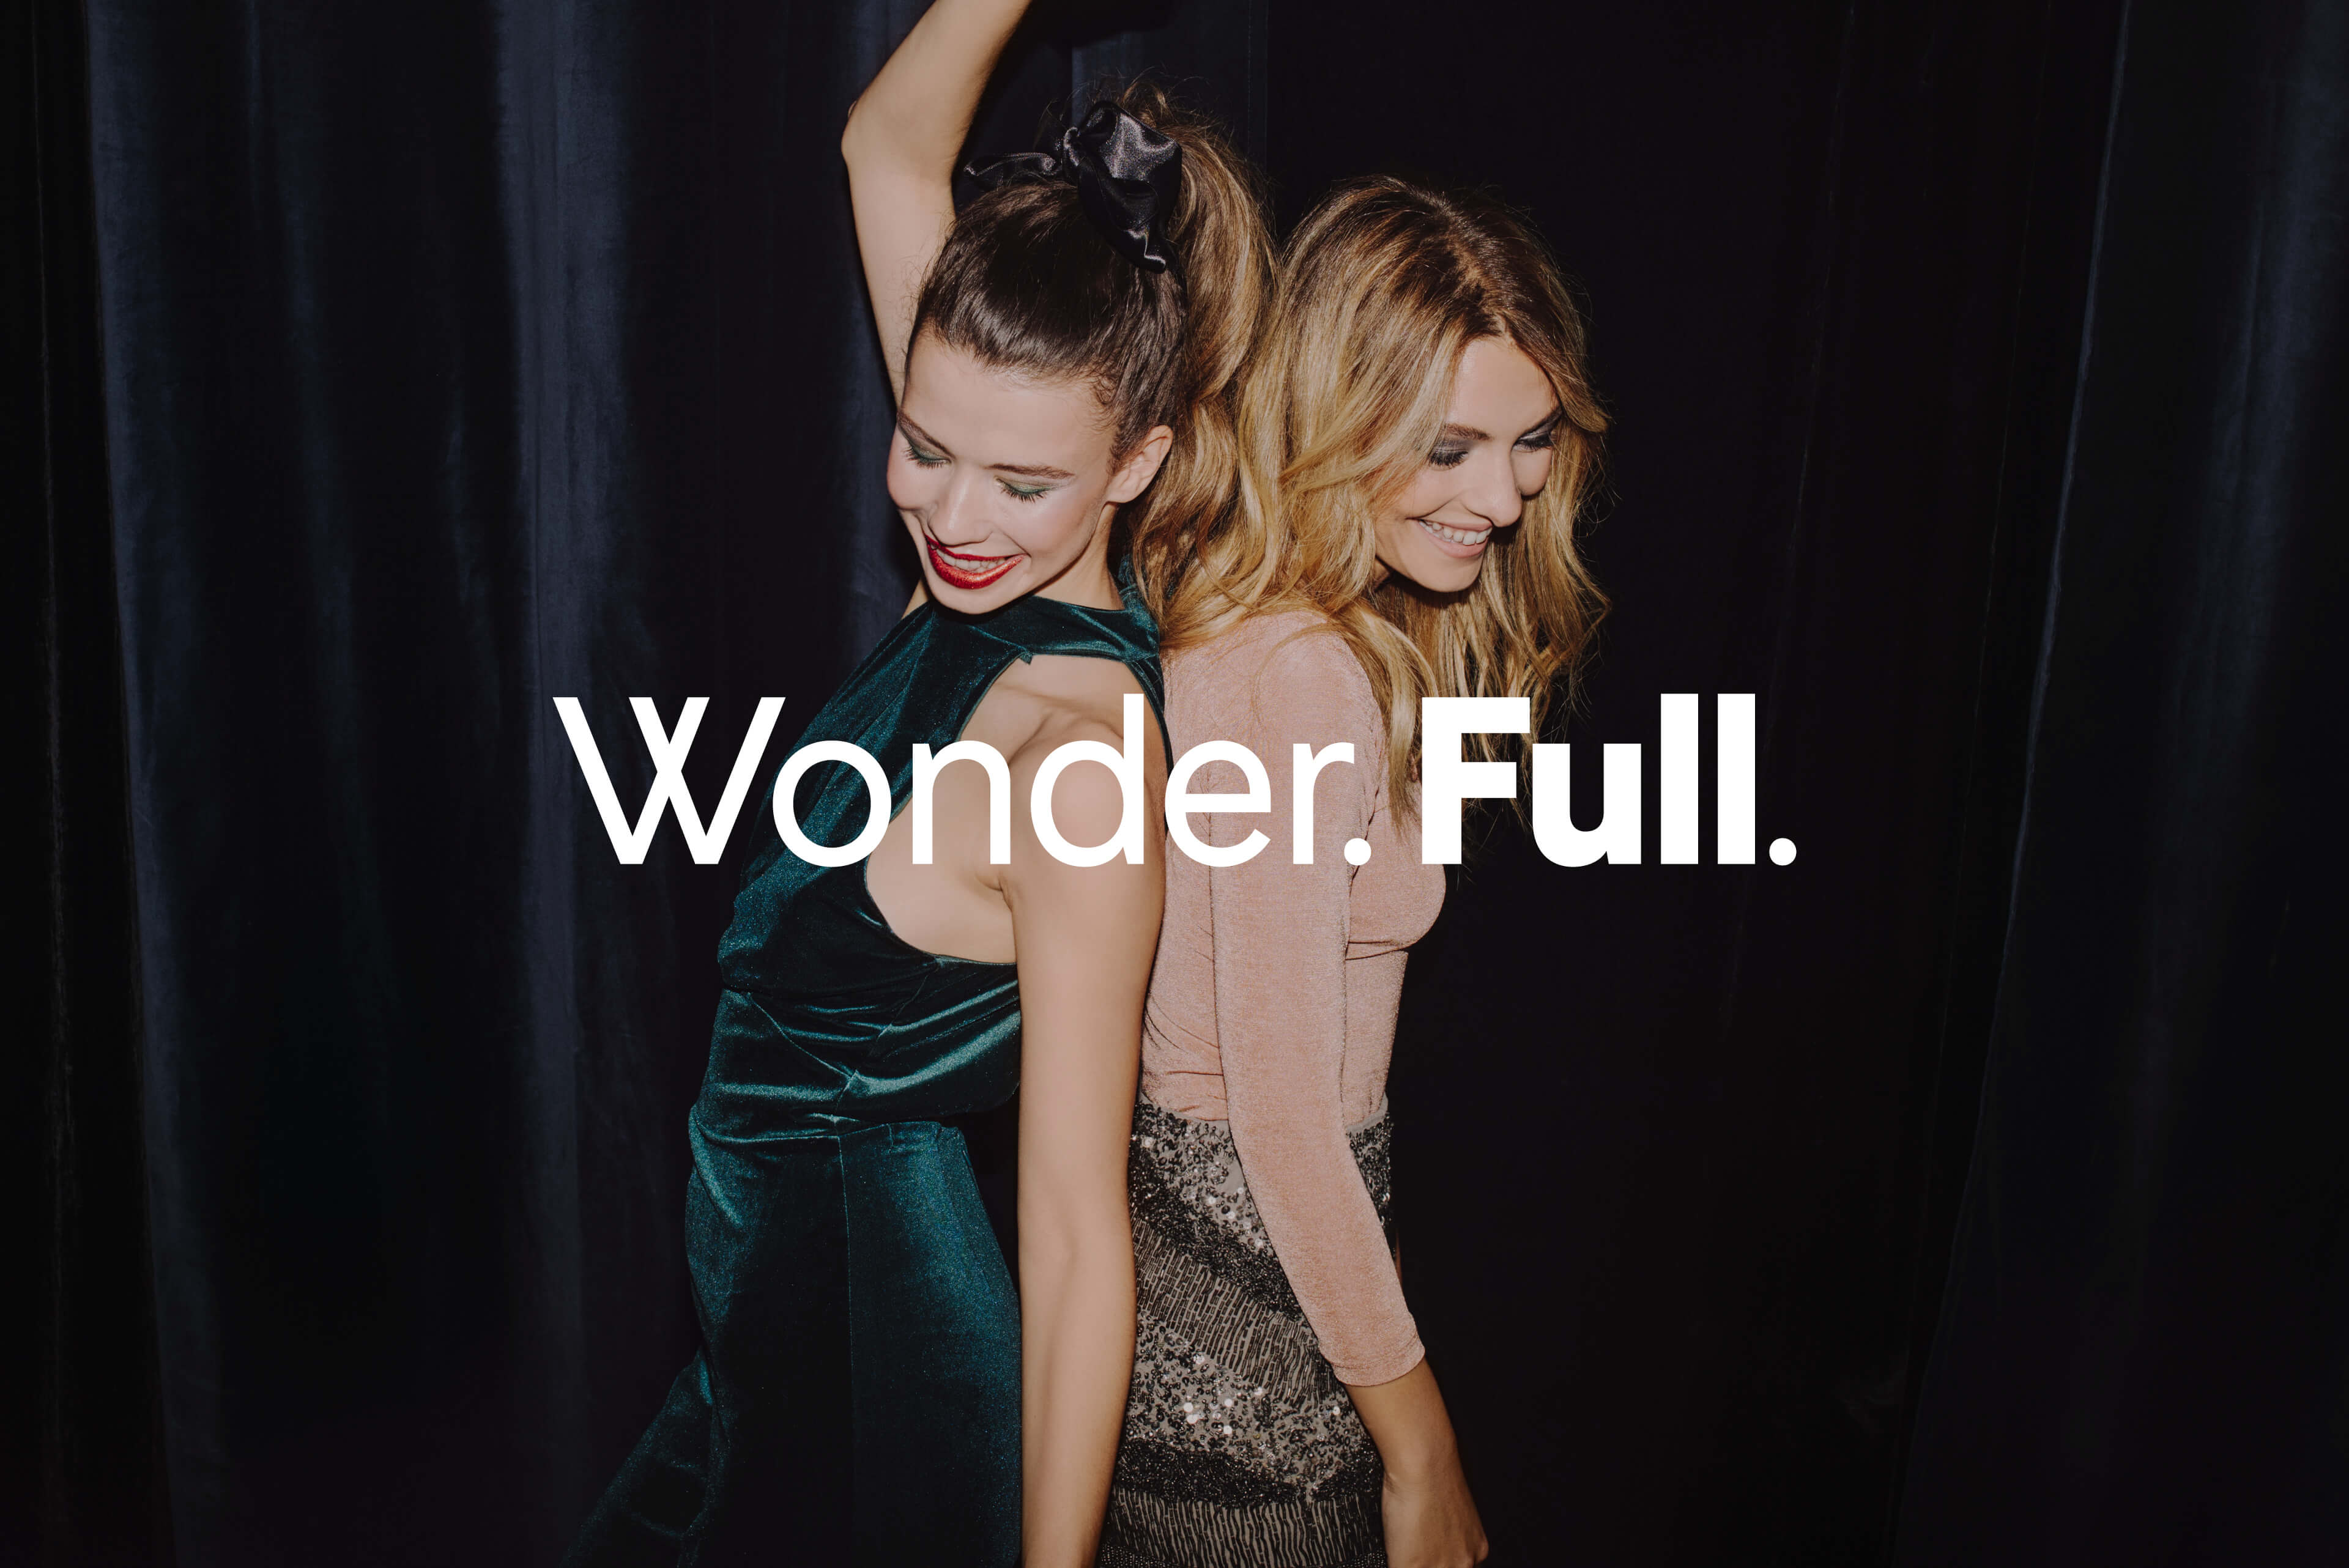 Ovolo Hotels Brand Refresh - Wonder. Full. Logotype with People Experience Photography